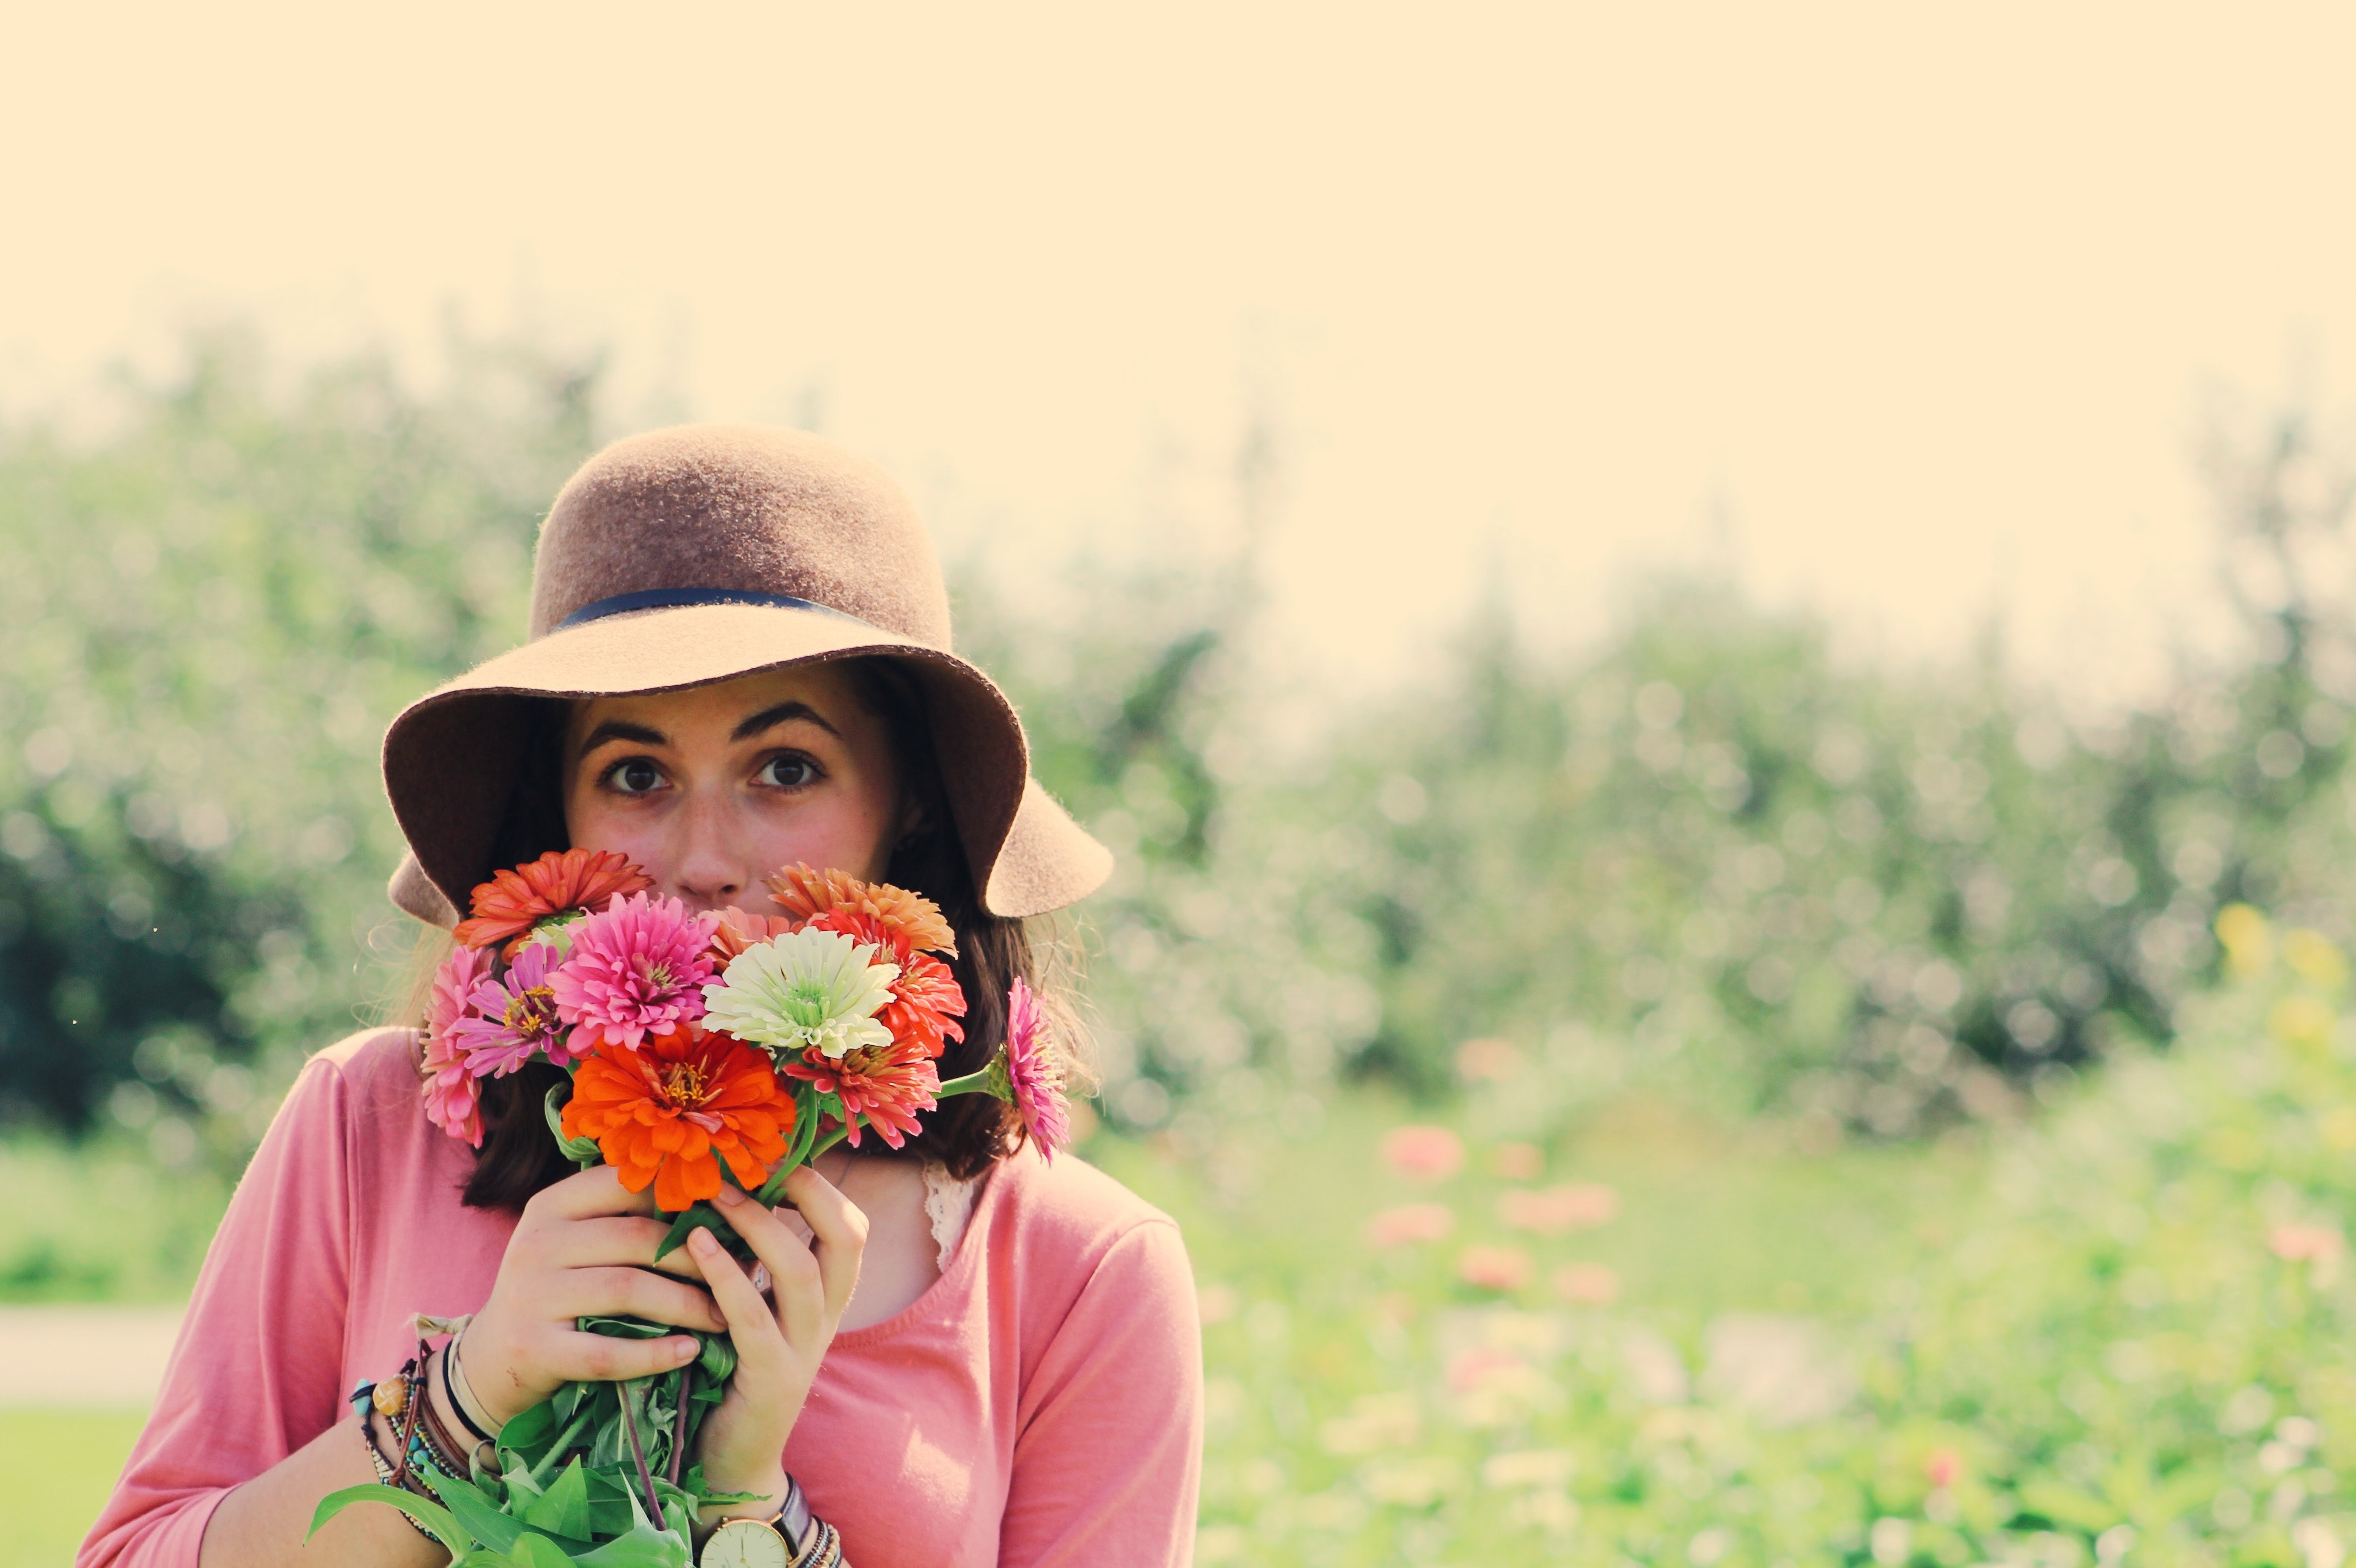 Woman wearing hat and holding flowers surrounded by plants photo